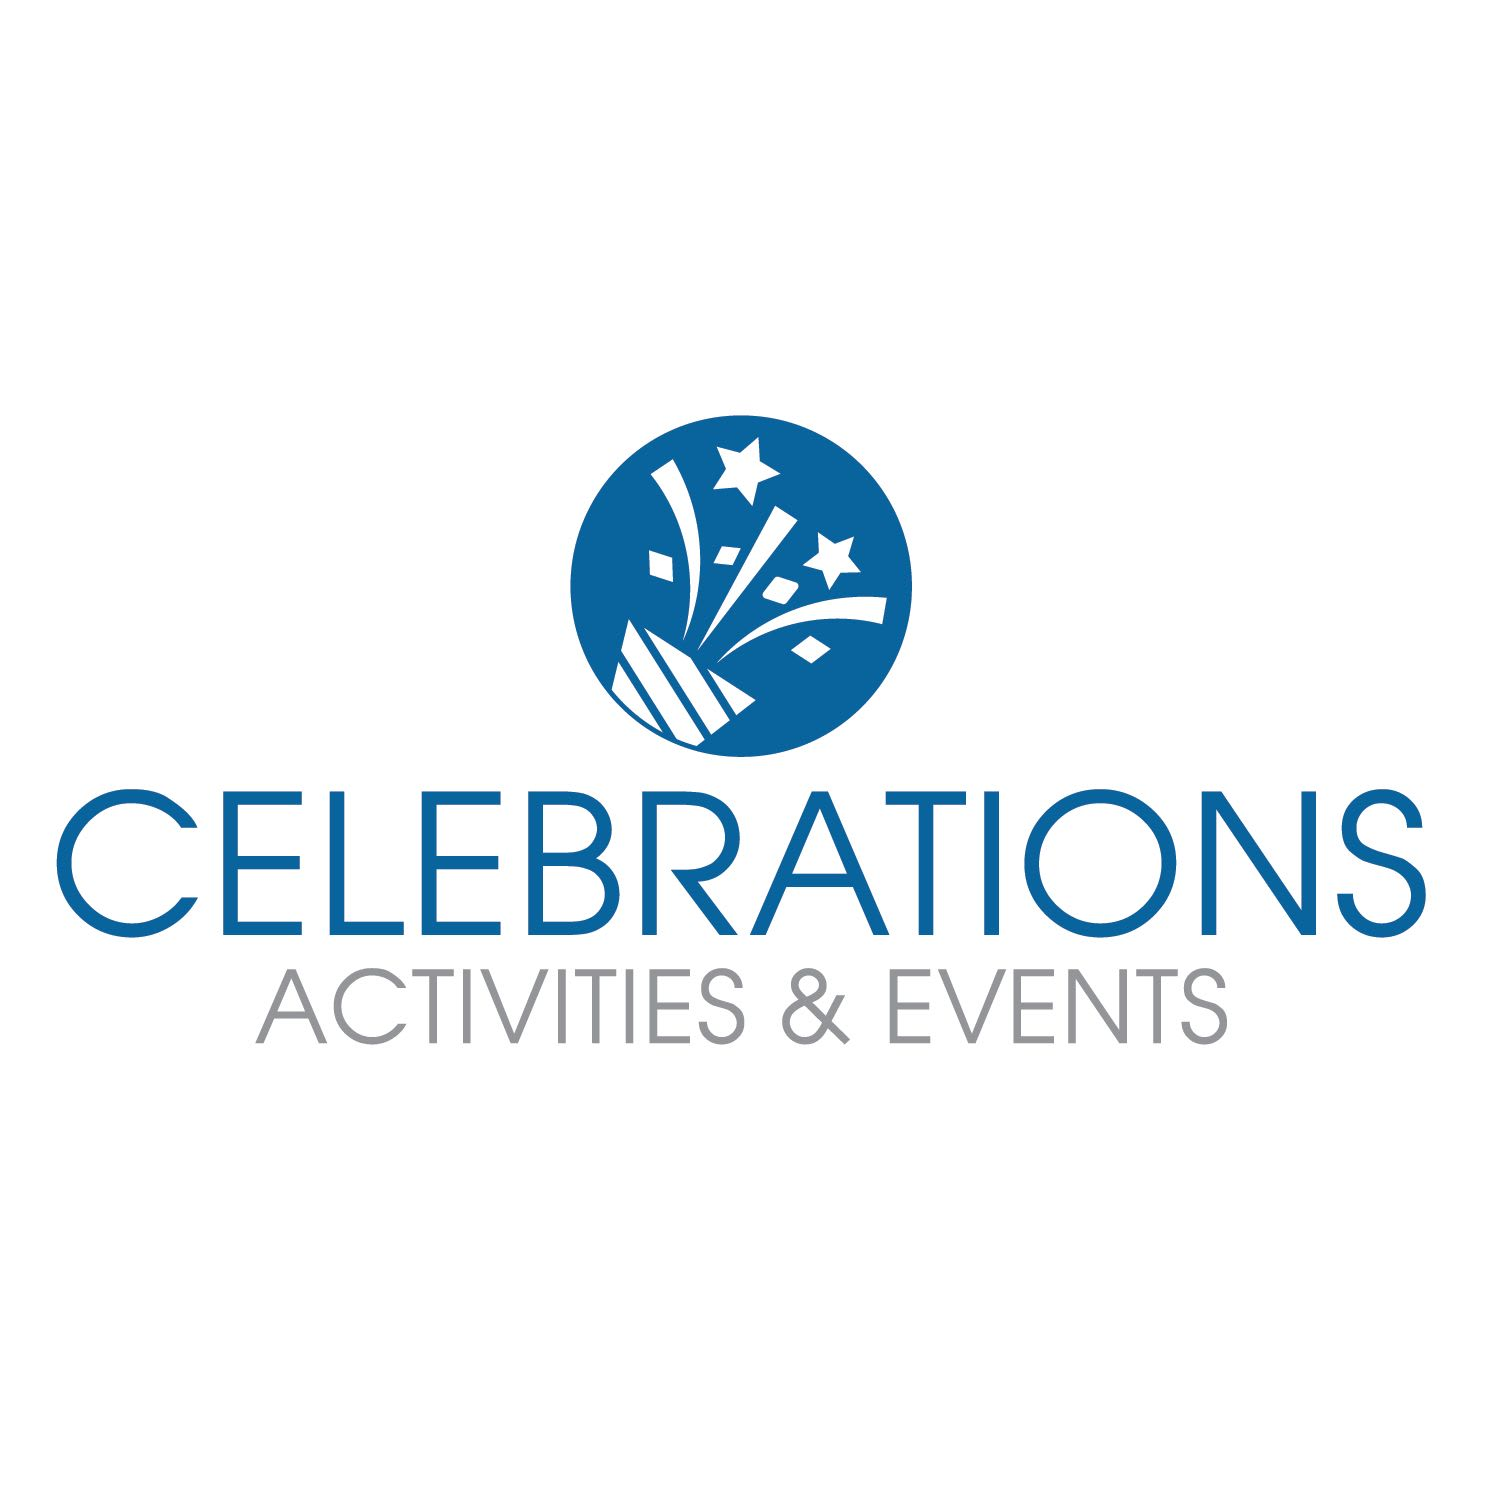 Celebrations at Oak Park Village at Slidell